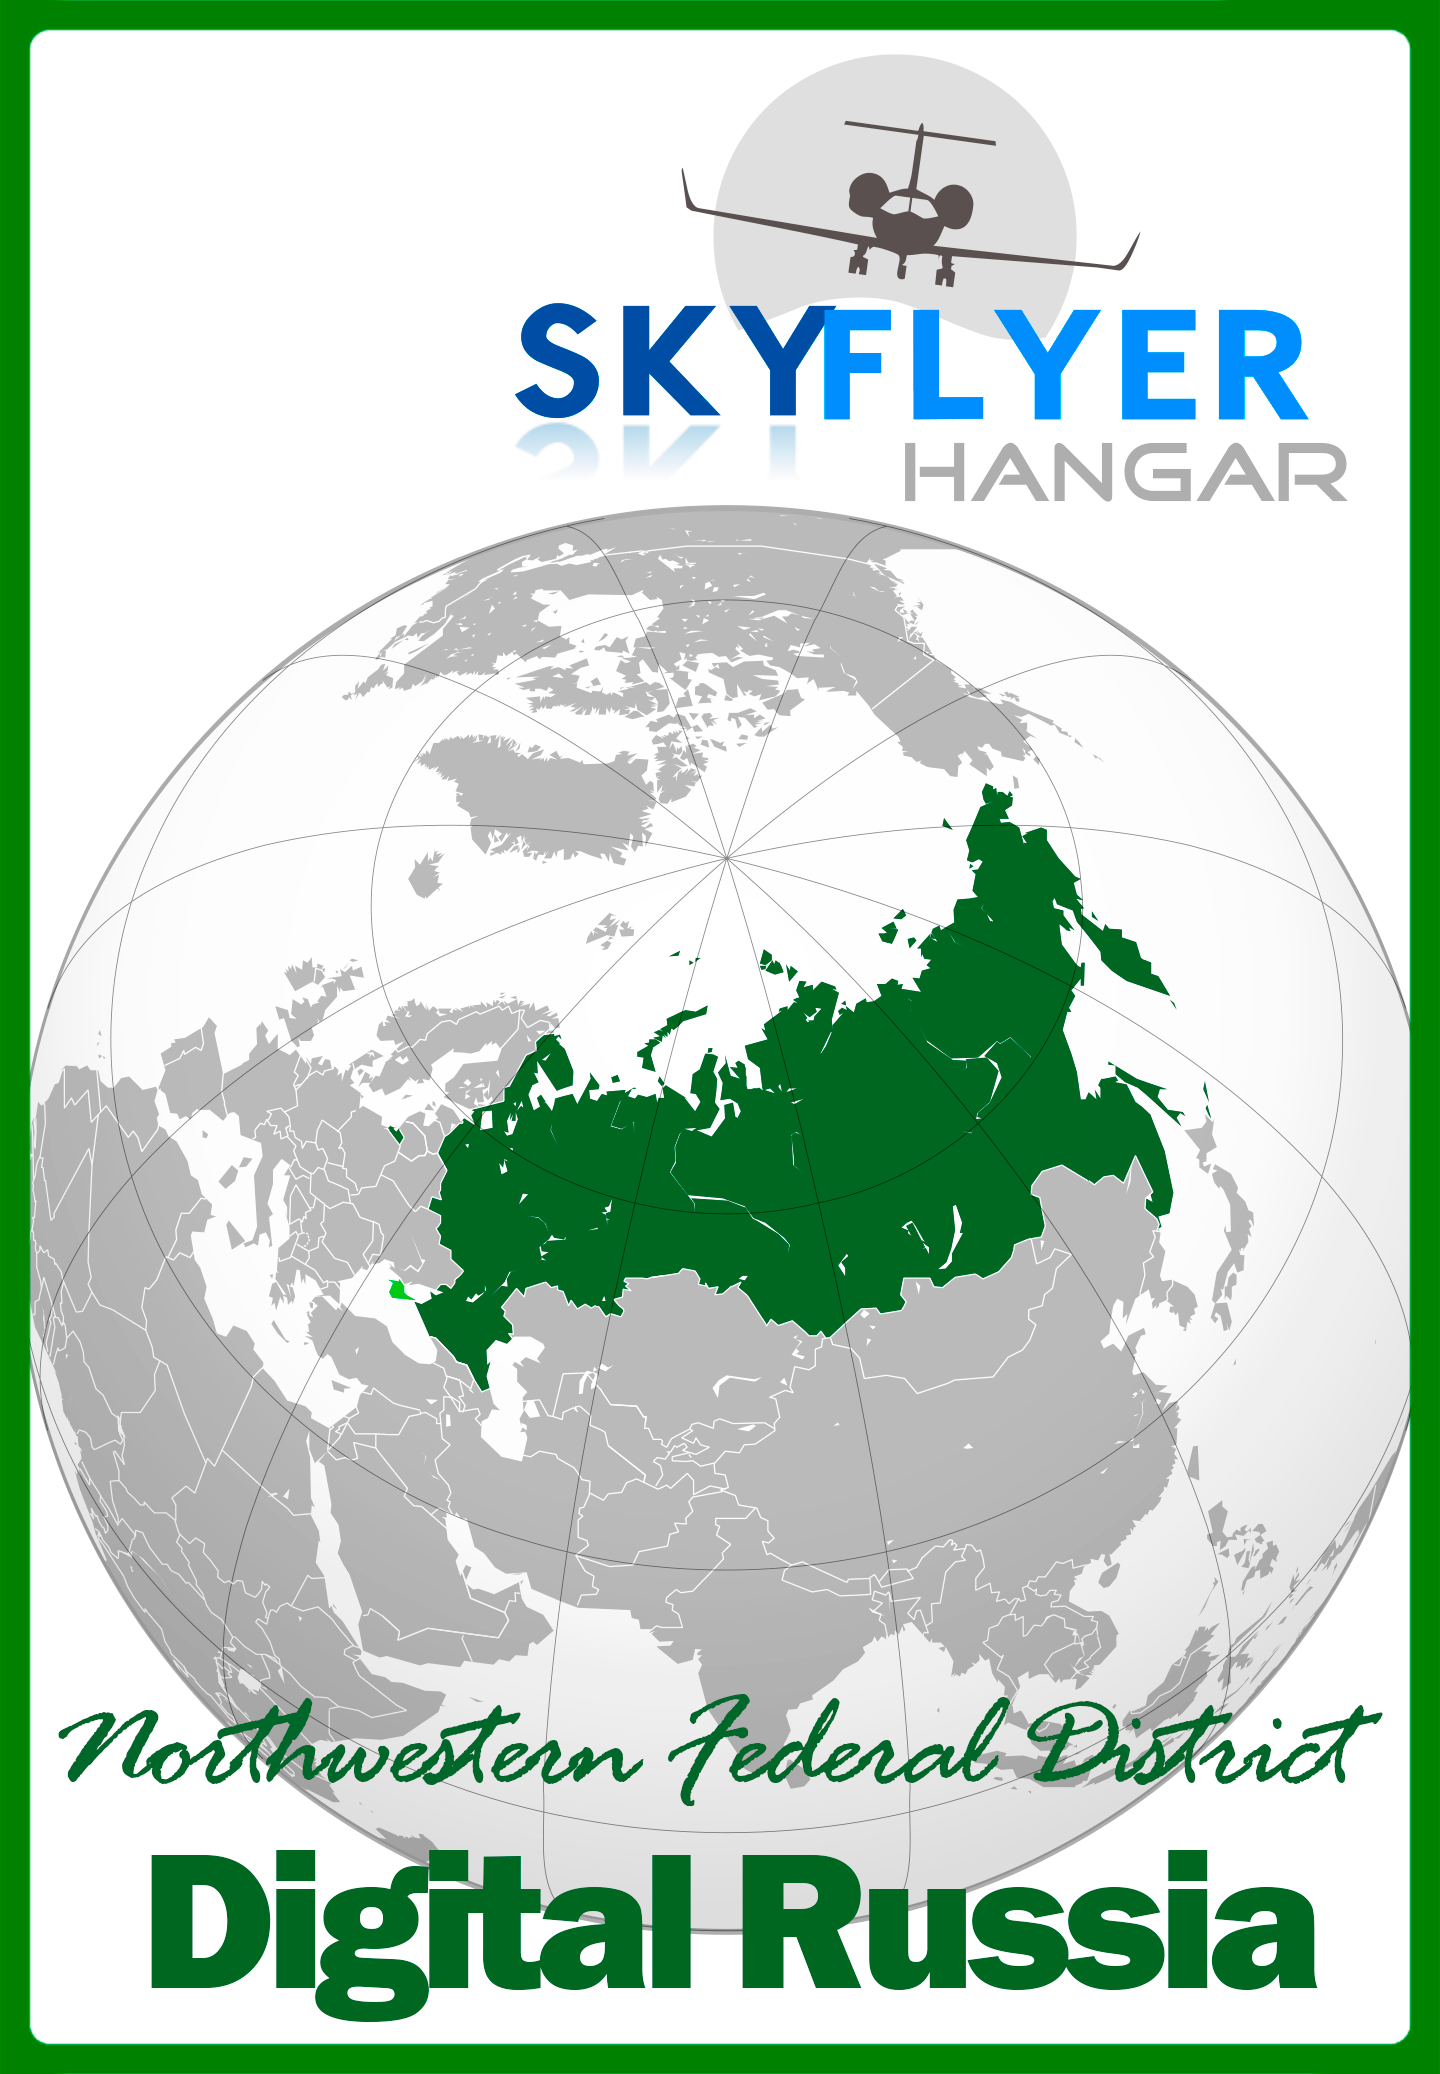 SKY FLYER HANGAR - DIGITAL RUSSIA NORTHWESTERN FEDERAL DISTRICT P3D